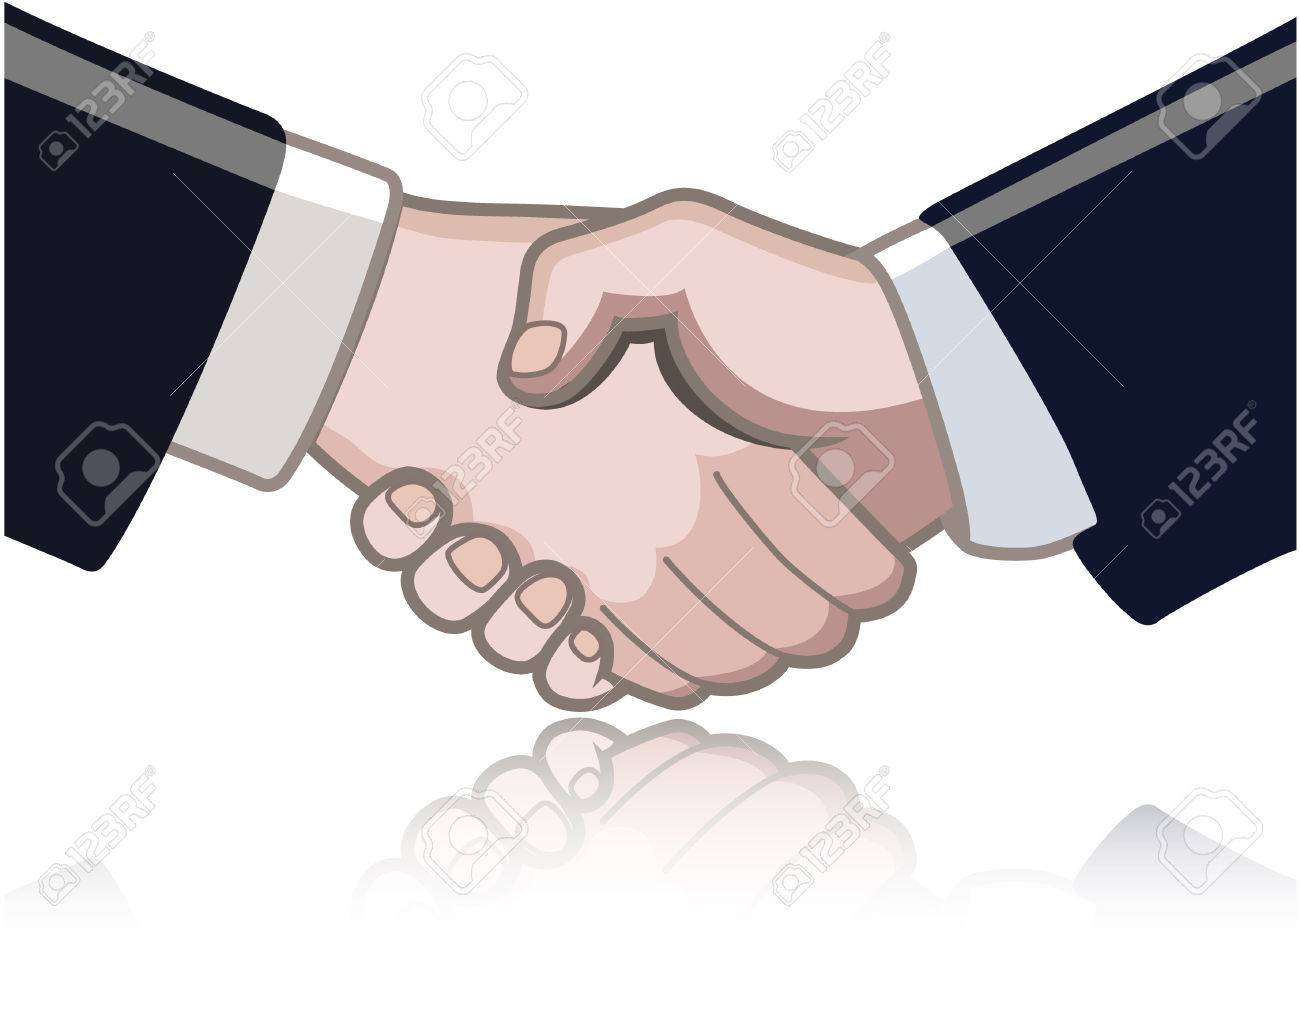 Hand shake between two persons isolated on white and a reflection underneath Stock Vector - 7394862